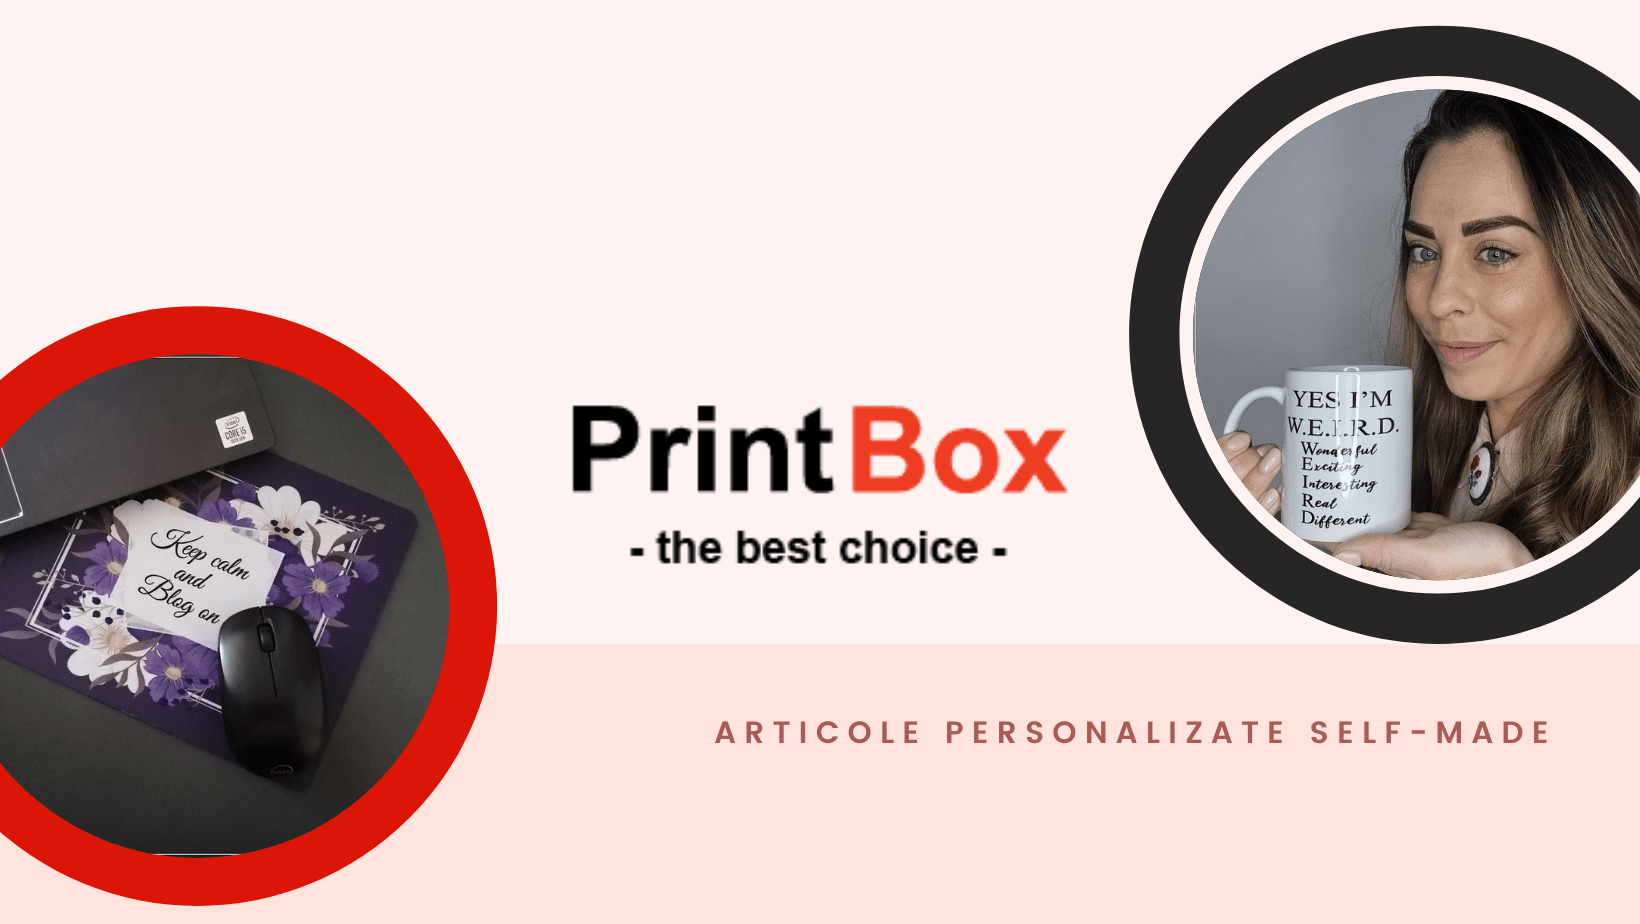 Atelier de personalizare self-made PrintBox